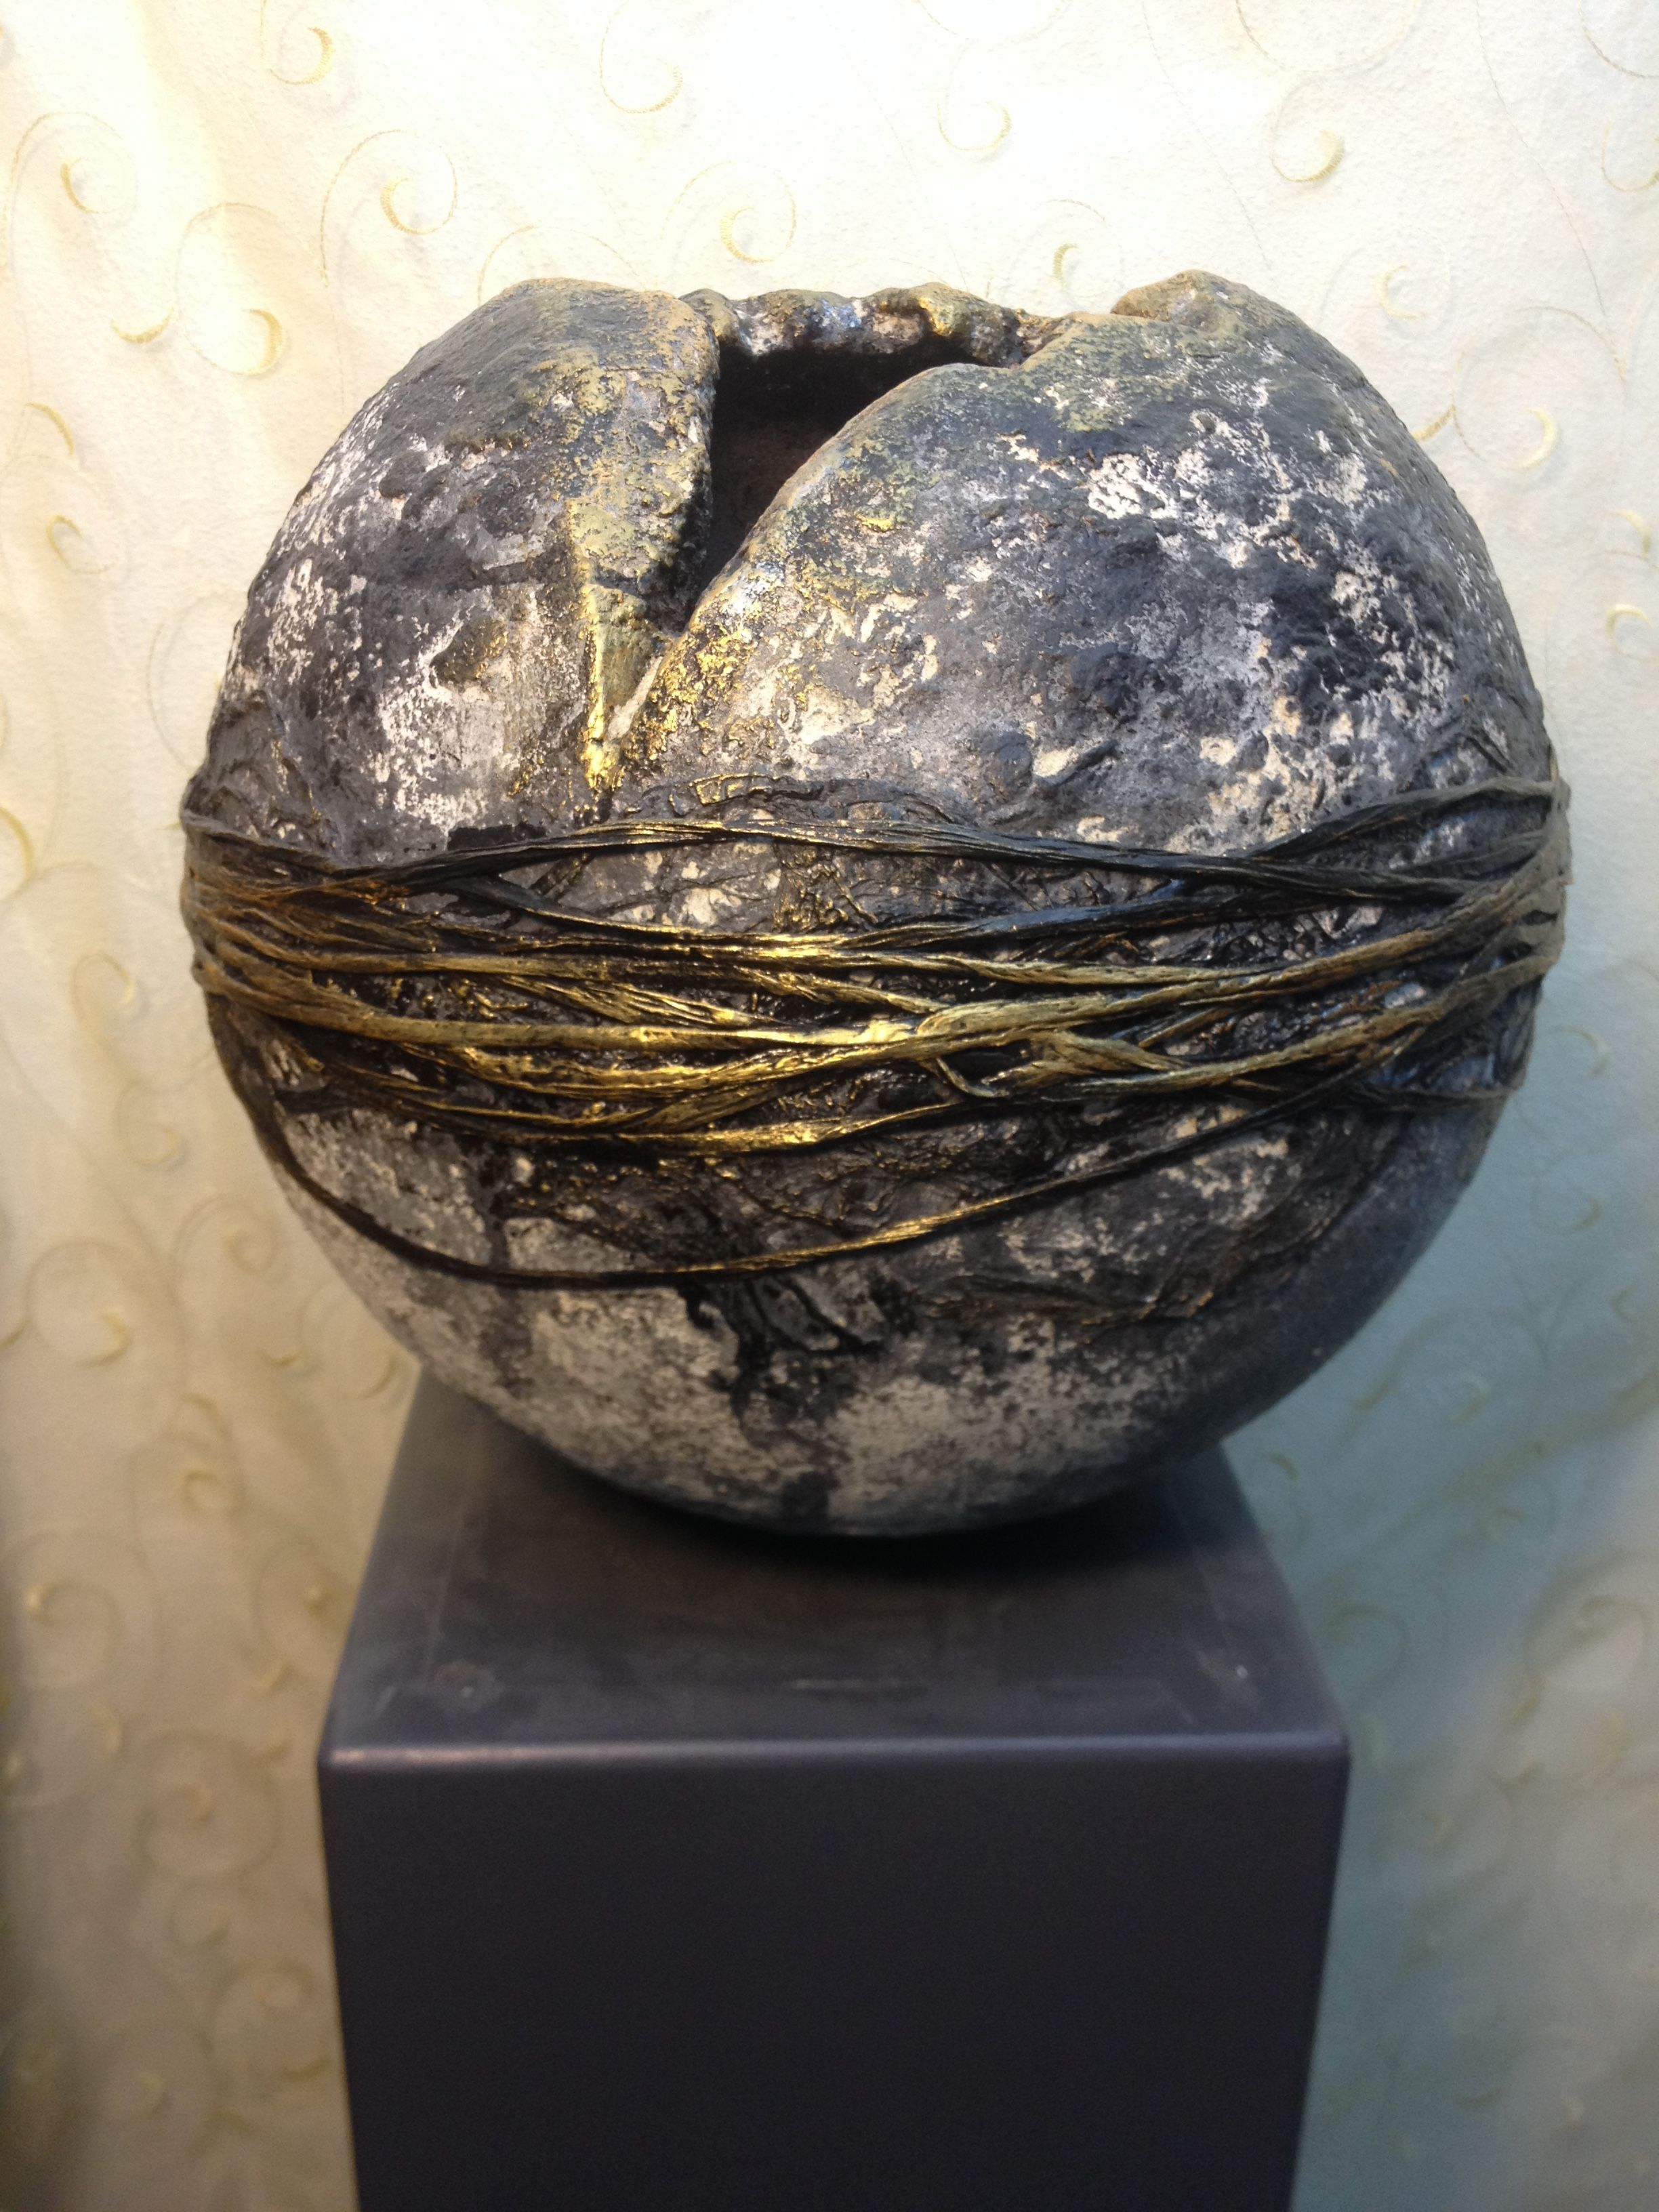 powertex globe by joyce edunjobi from phoenix living arts www